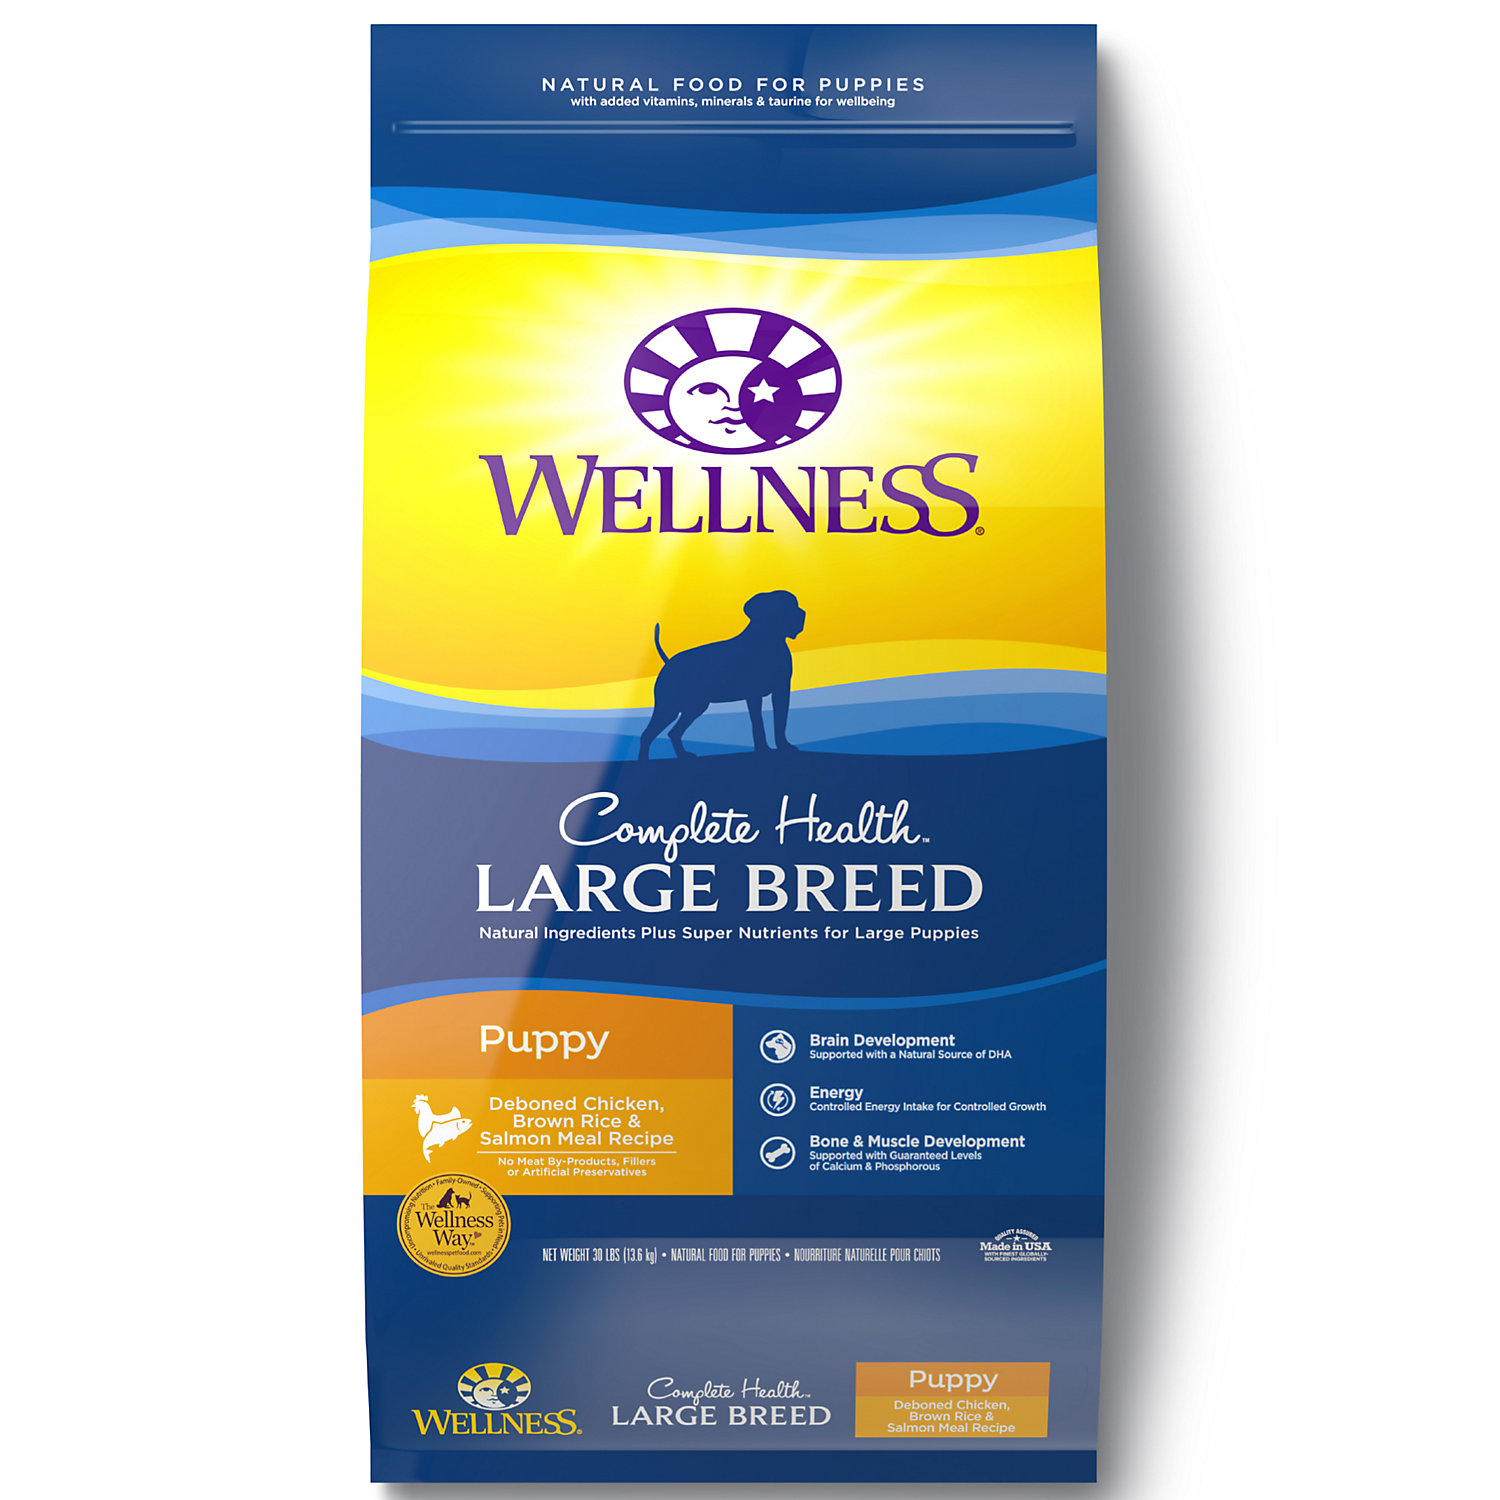 Wellness Dog Food Upc Amp Barcode Upcitemdb Com